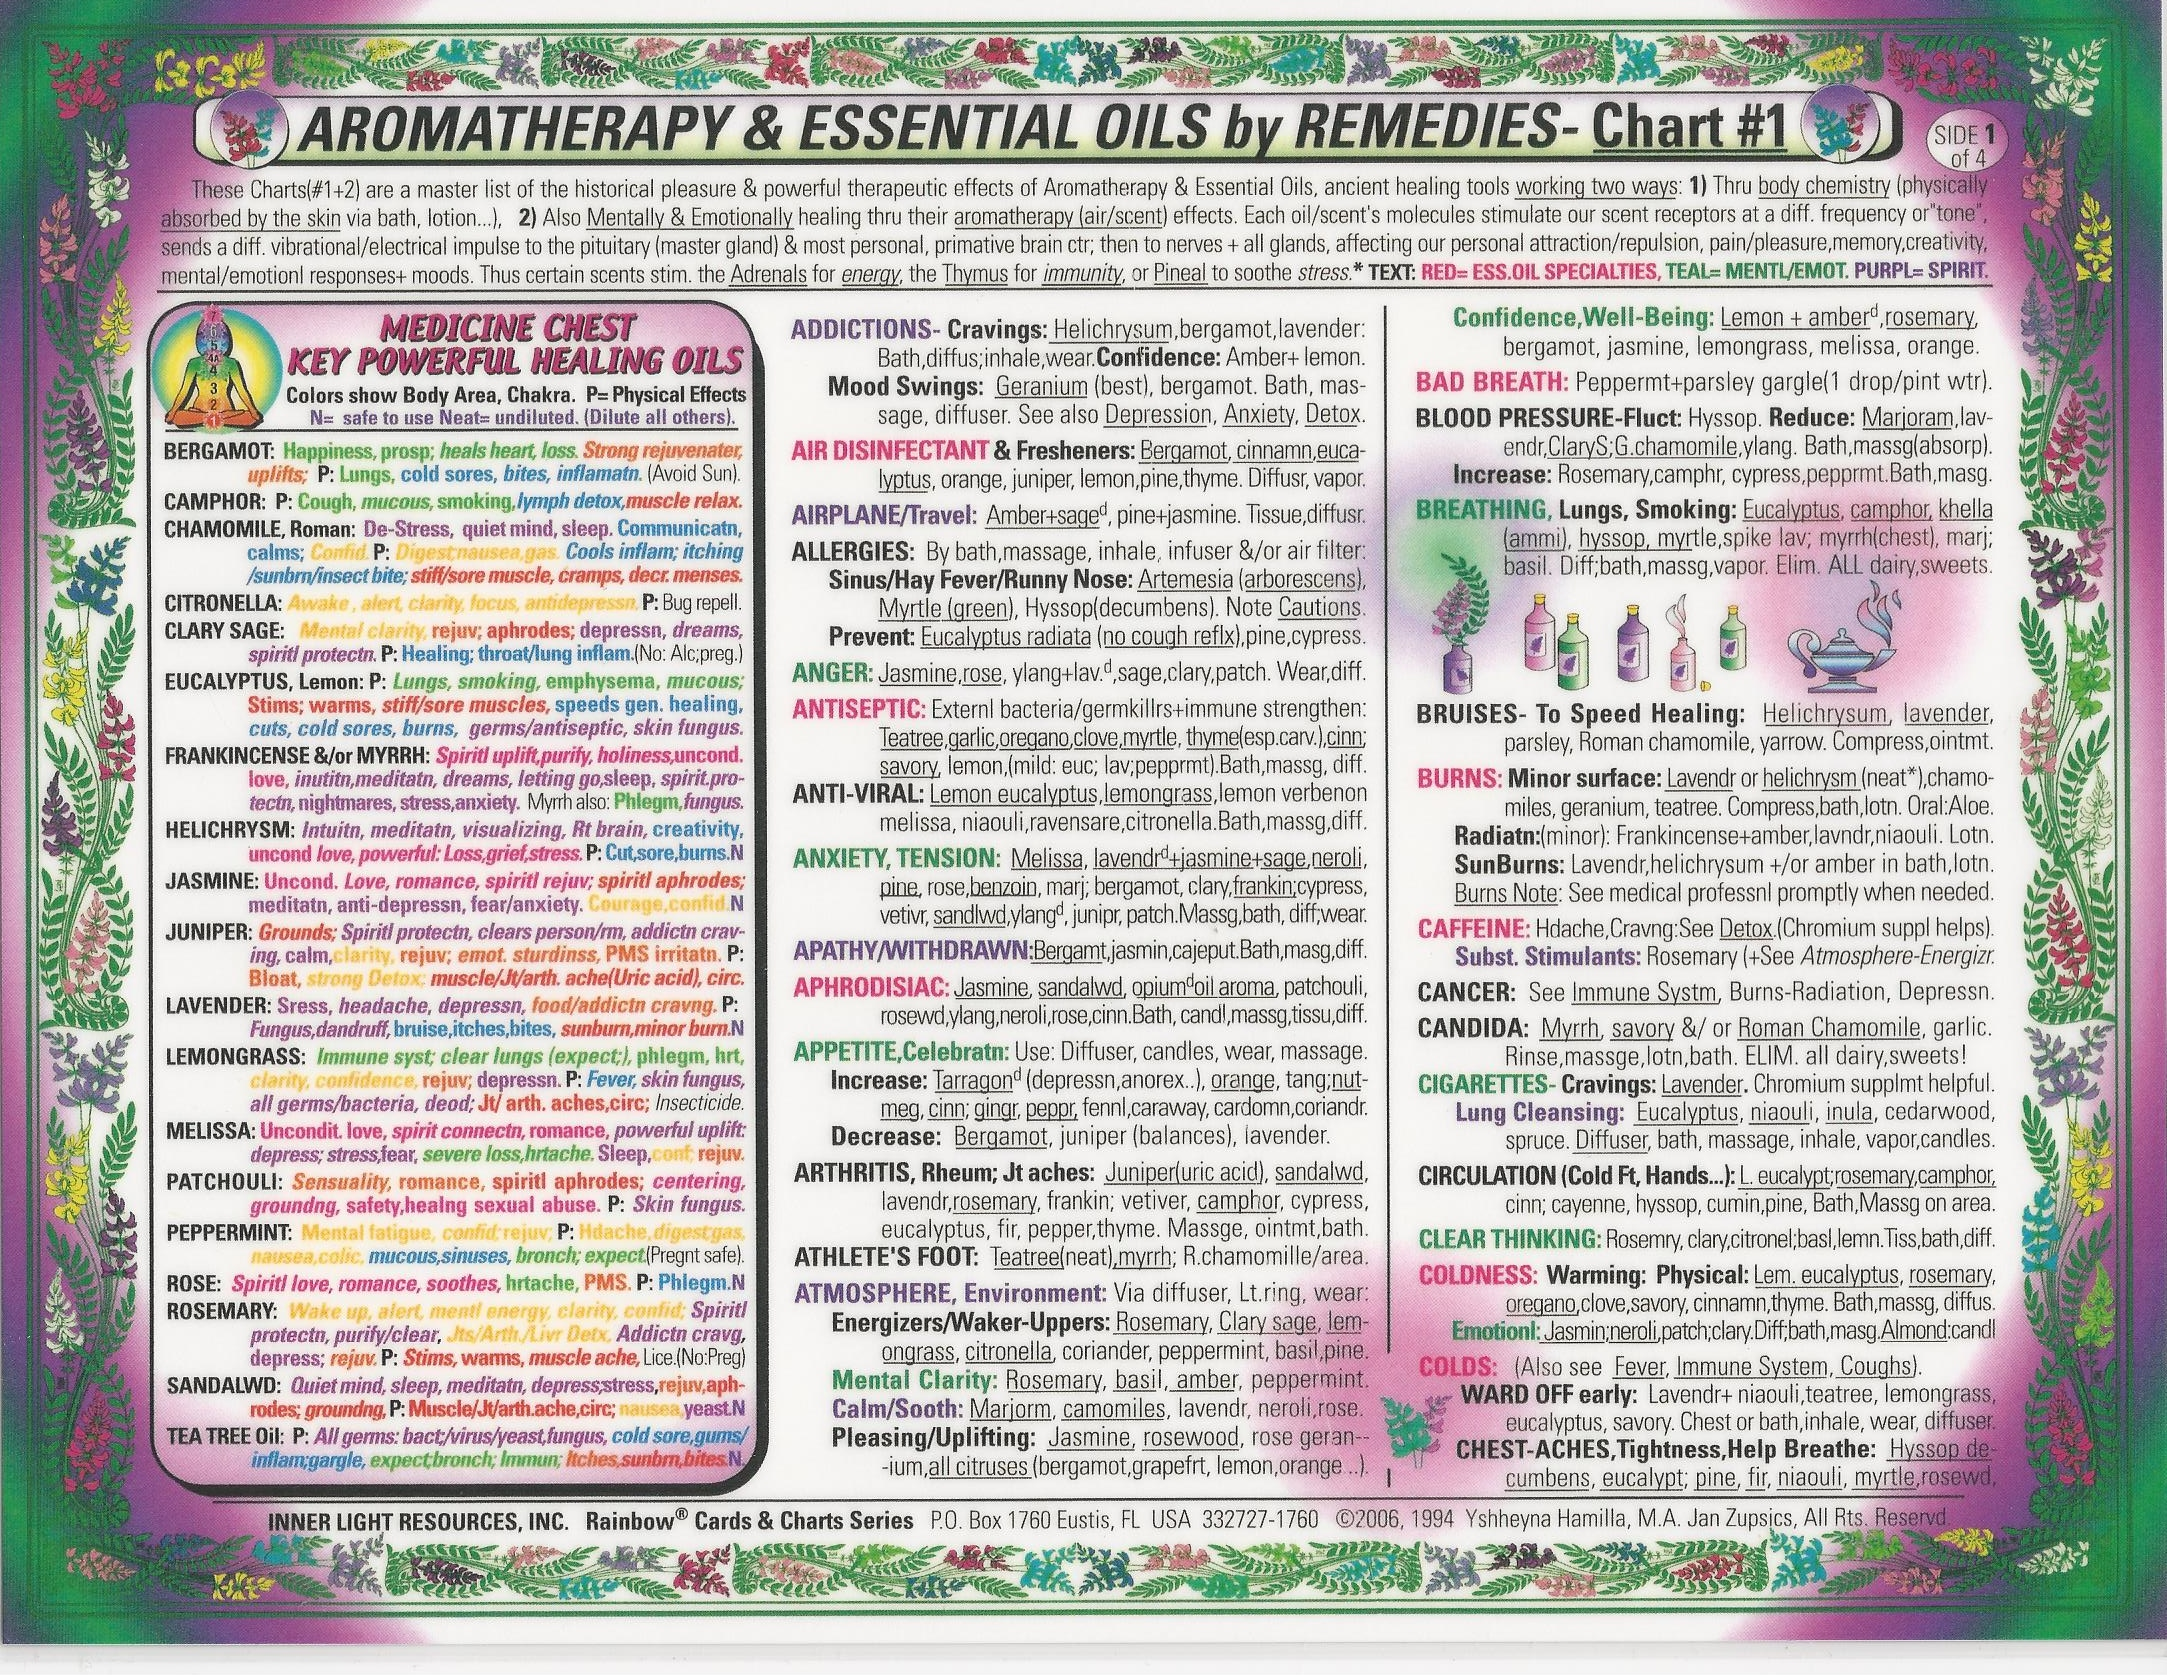 Aromatherapy essential oil by remedies chart 1 american